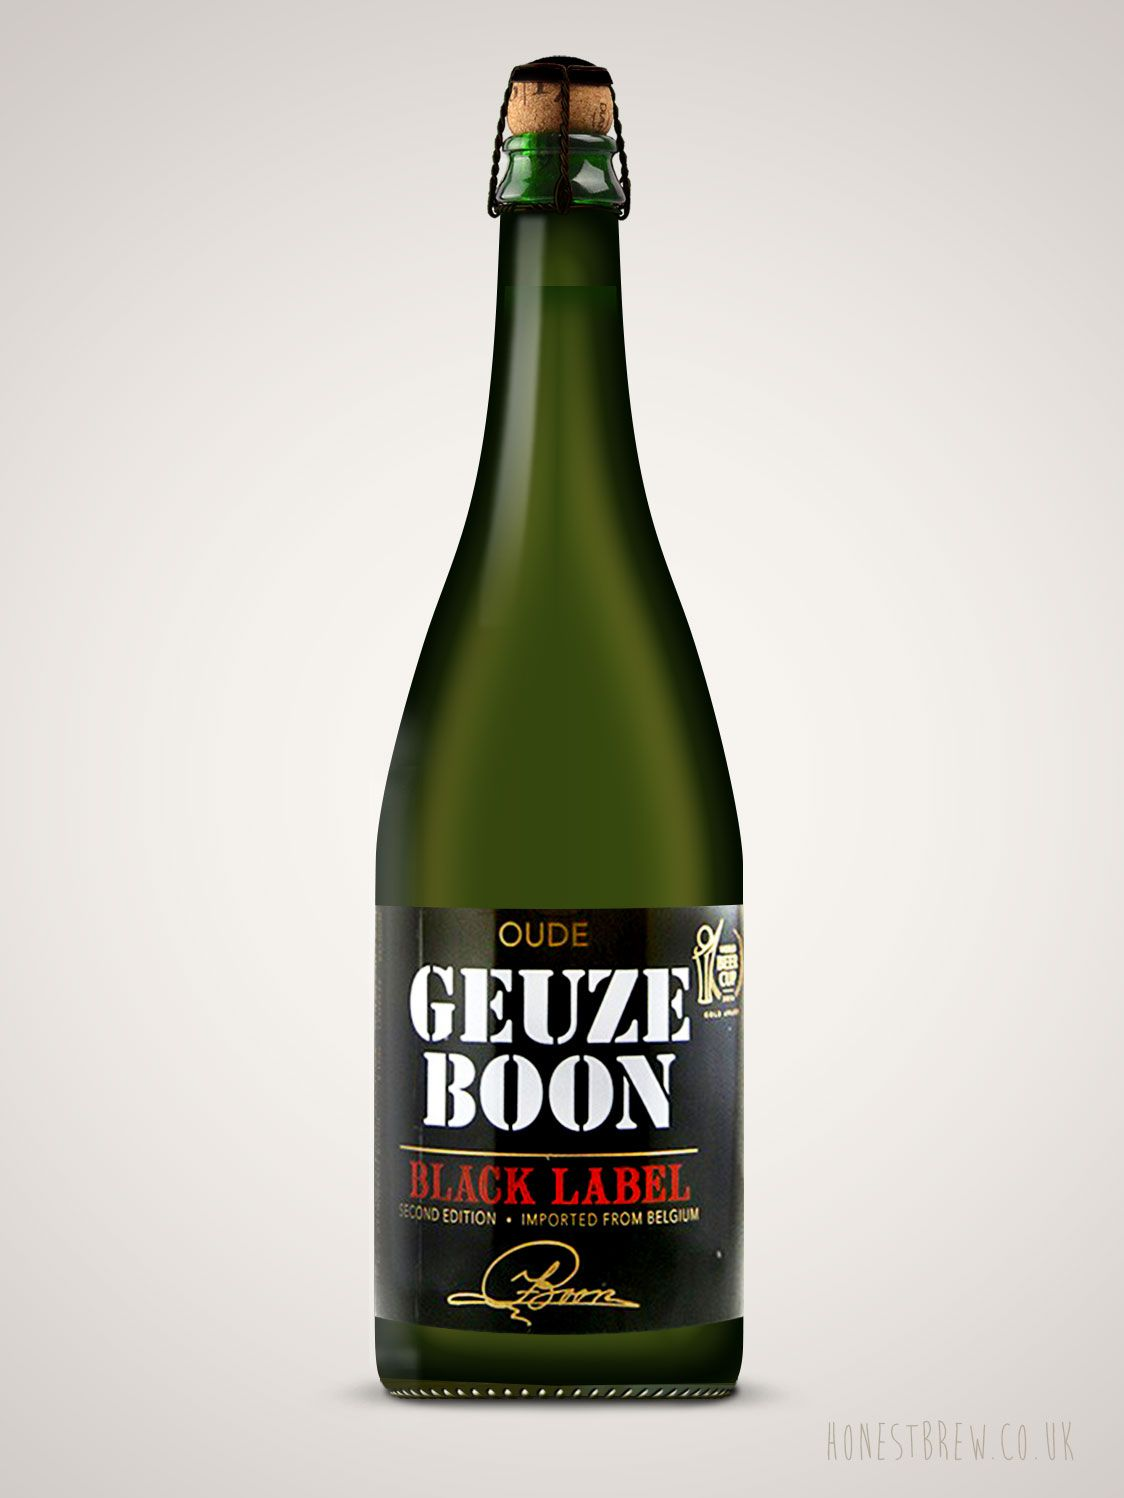 Oude Geuze Boon Black Label Second Editon 750ml